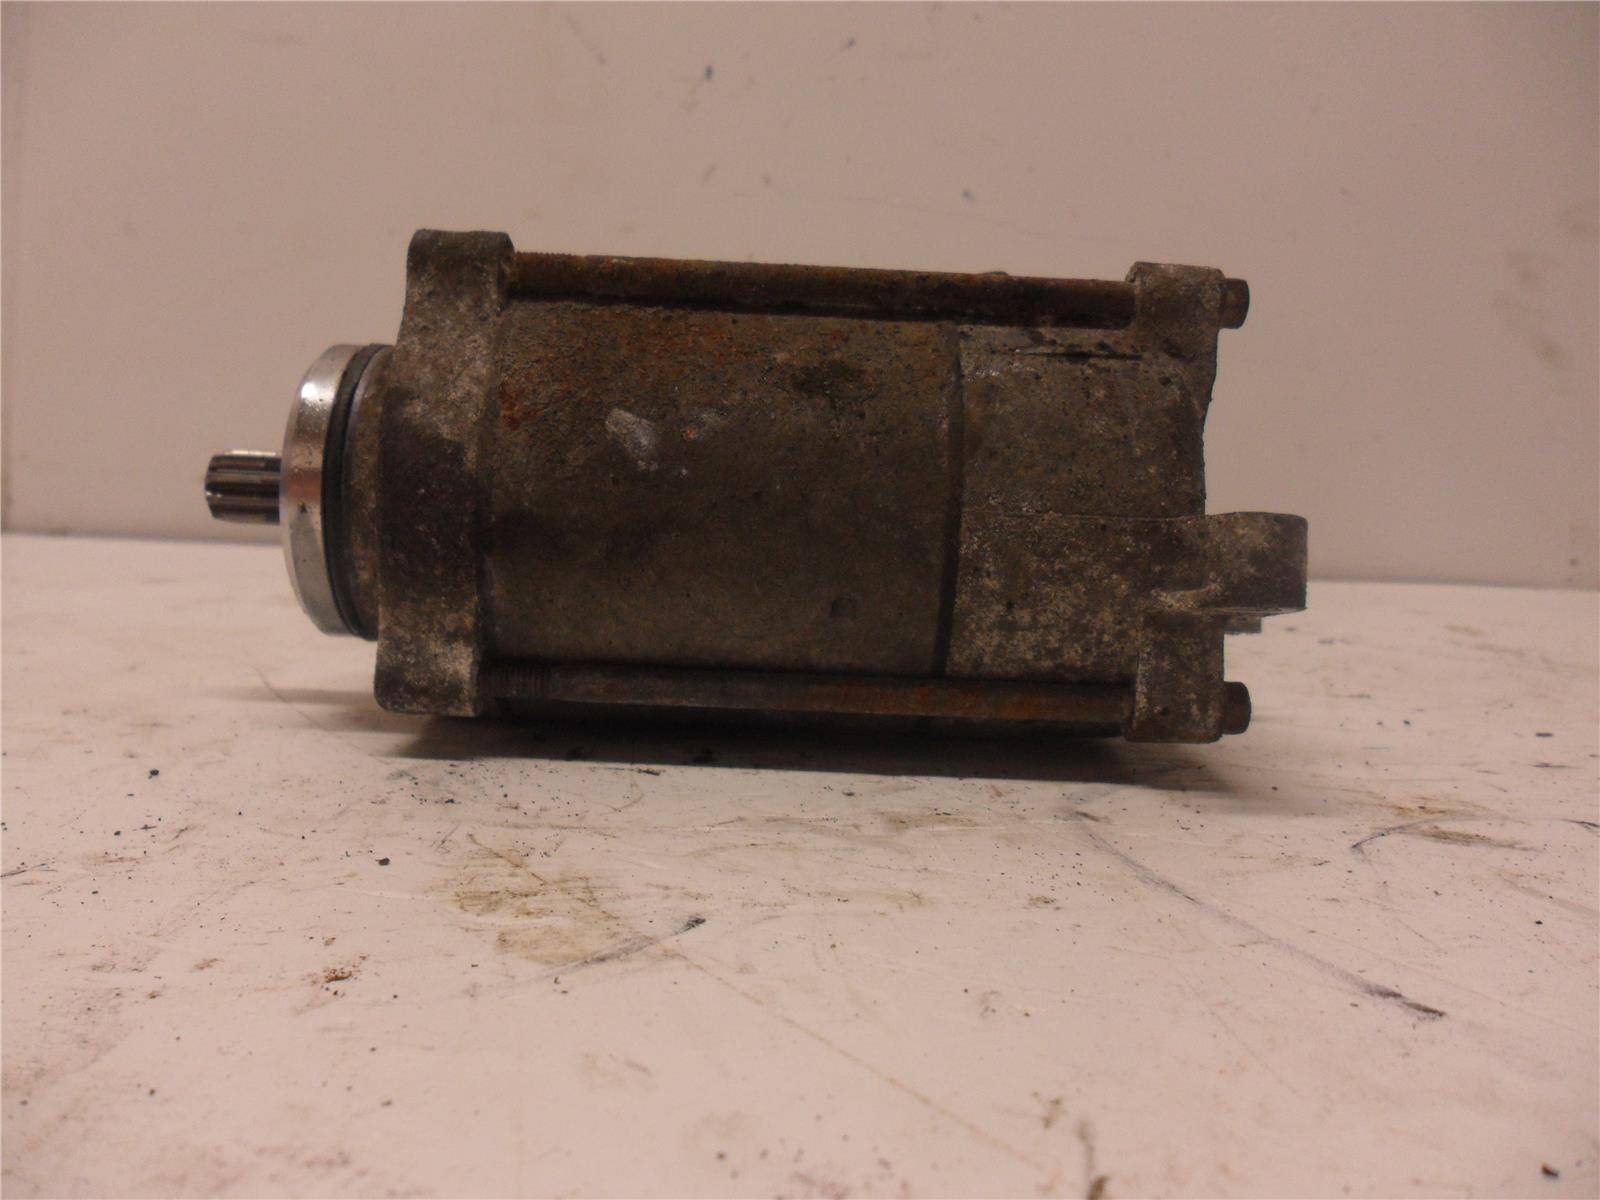 1996 Honda Vfr 750 Rc36 Starter Motor For Sale From Scb Motorcycles Motorcycle On